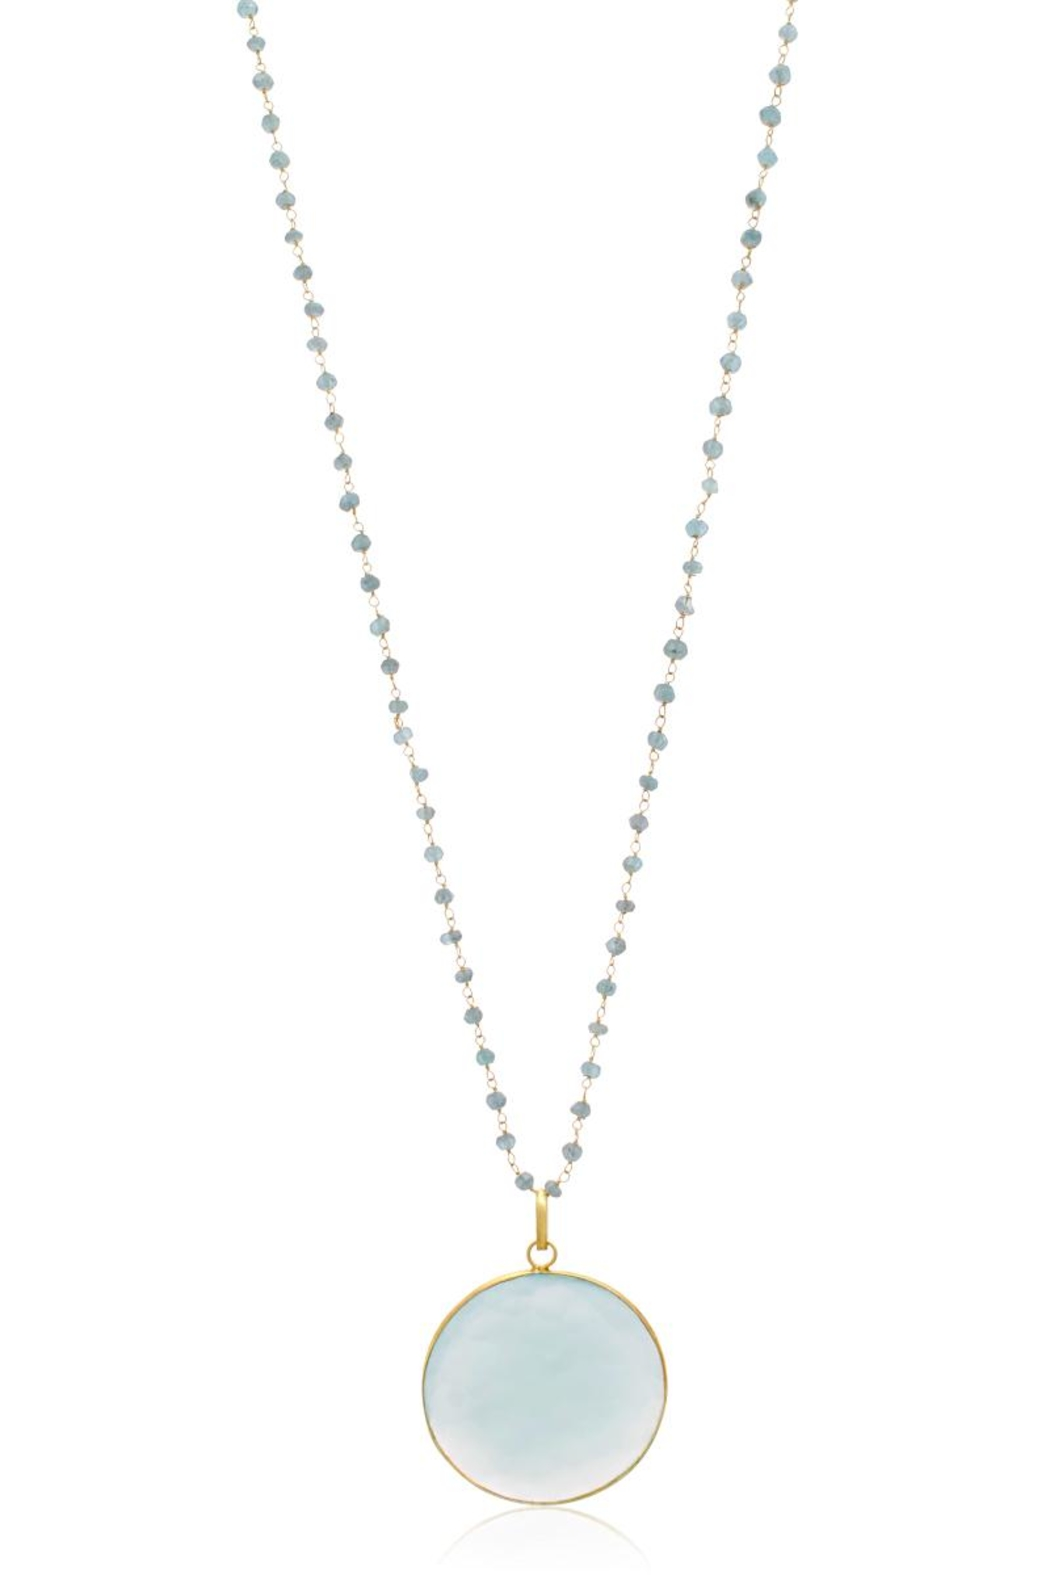 6th Borough Boutique Chalcedony Disc Necklace - Main Image